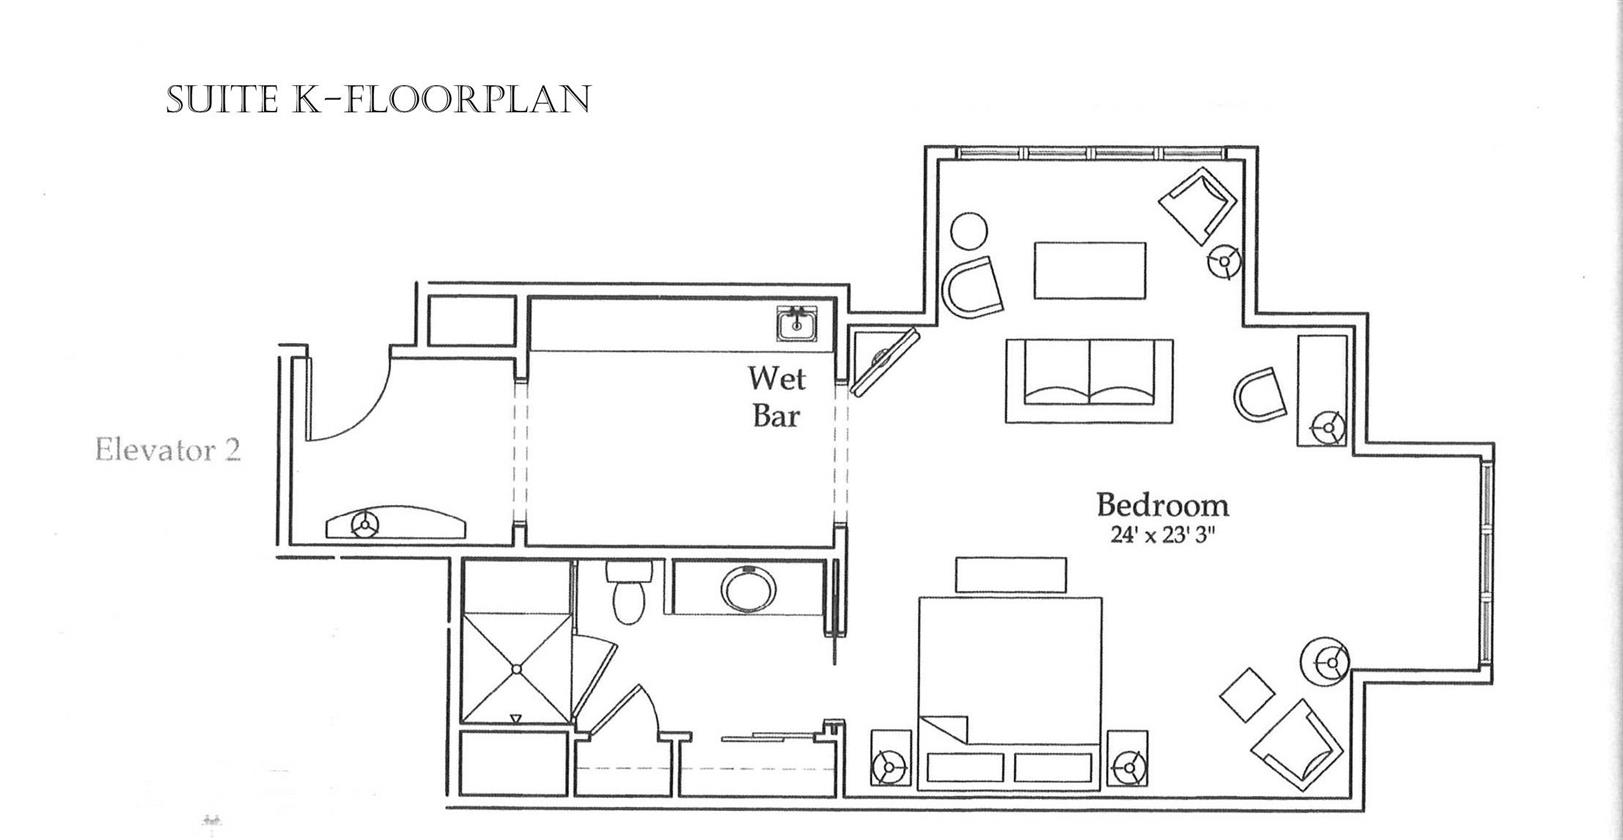 Floor Plan for Clubhouse Suite K